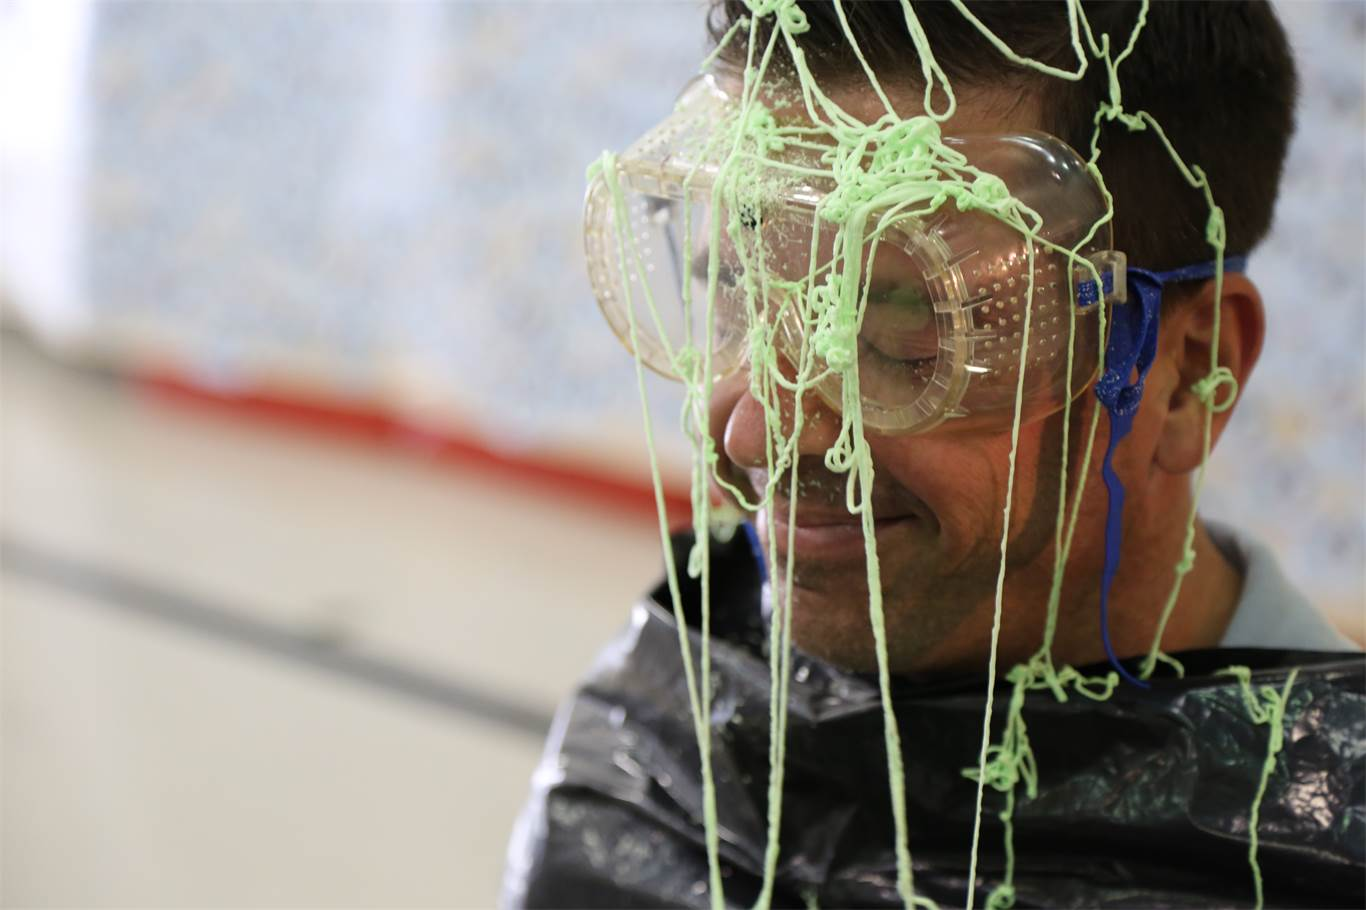 To celebrate raising over $9000, students had a chance to throw Silly String and pie-in-the-face at teachers.